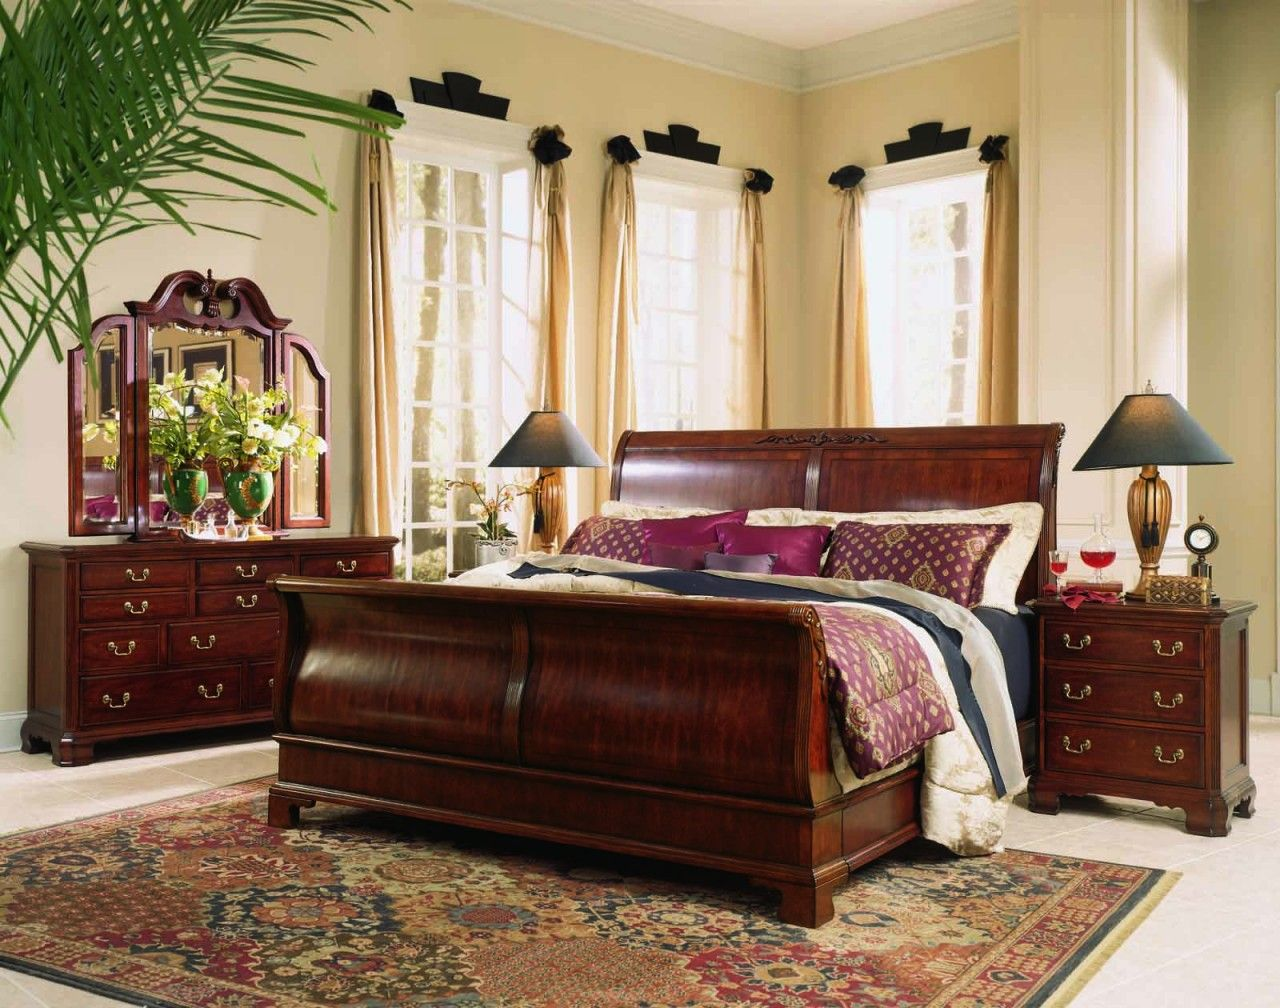 Captivating Area Rug Design Feat Traditional Bedroom